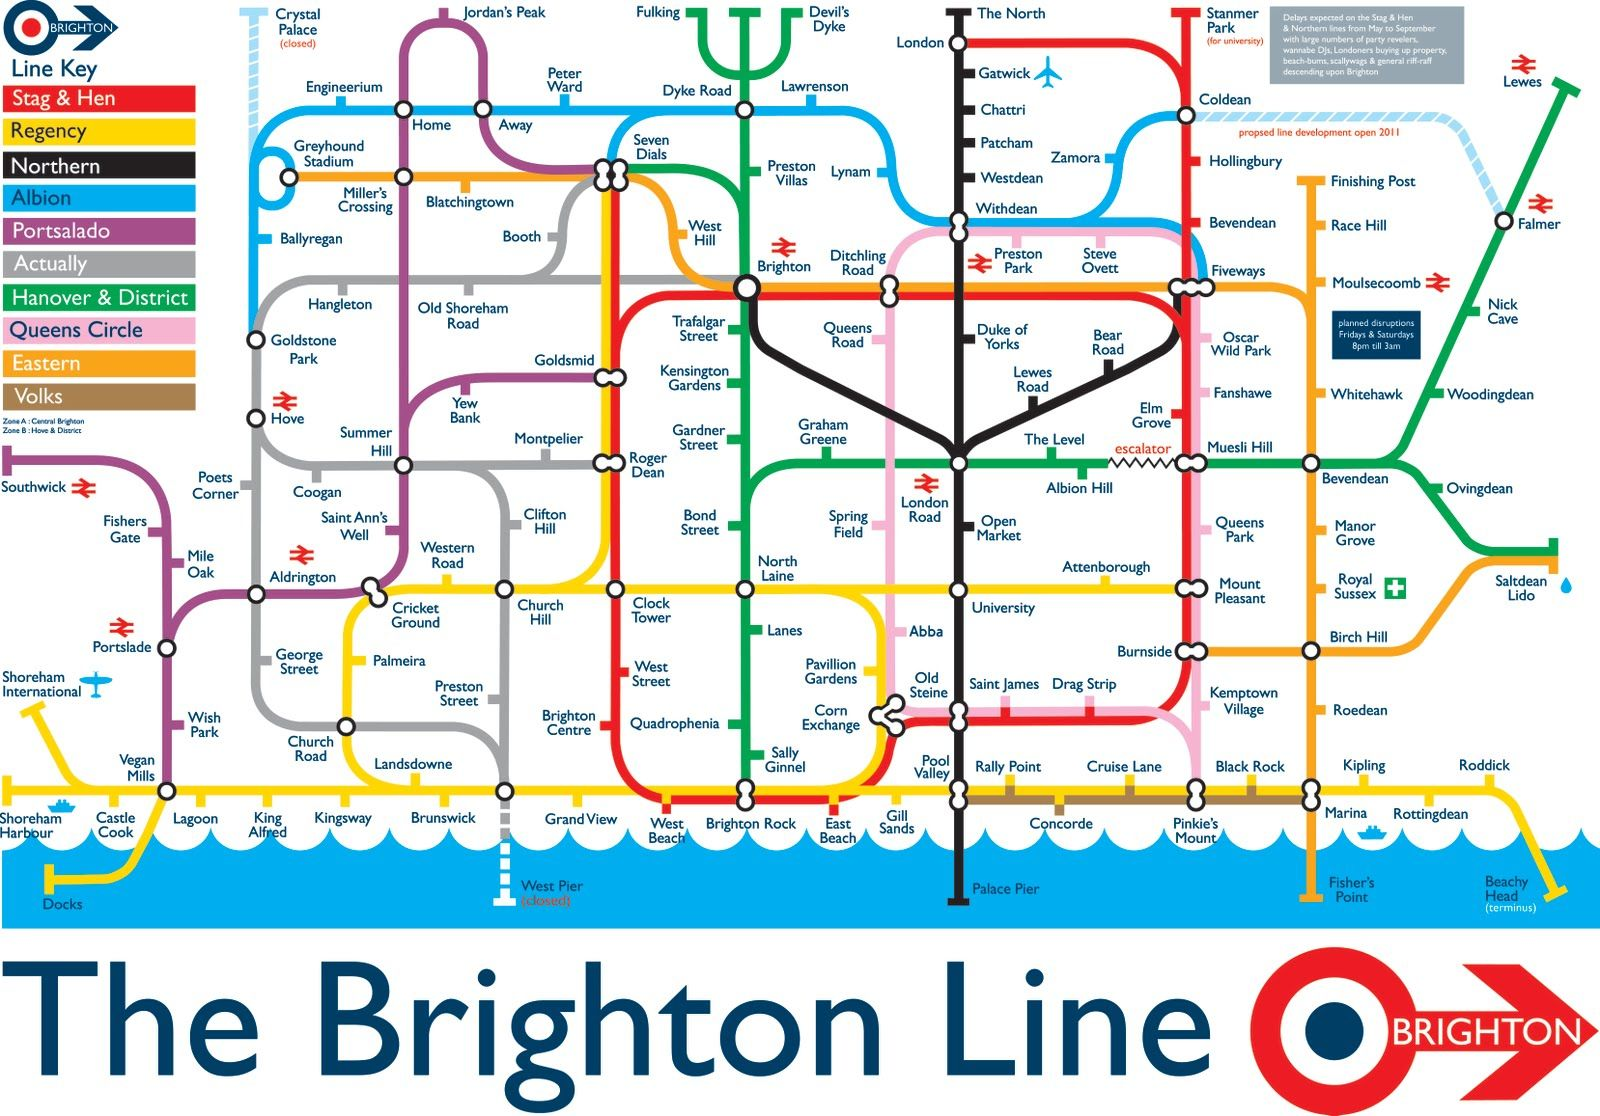 map of brighton in london underground style  art  pinterest  - map of brighton in london underground style